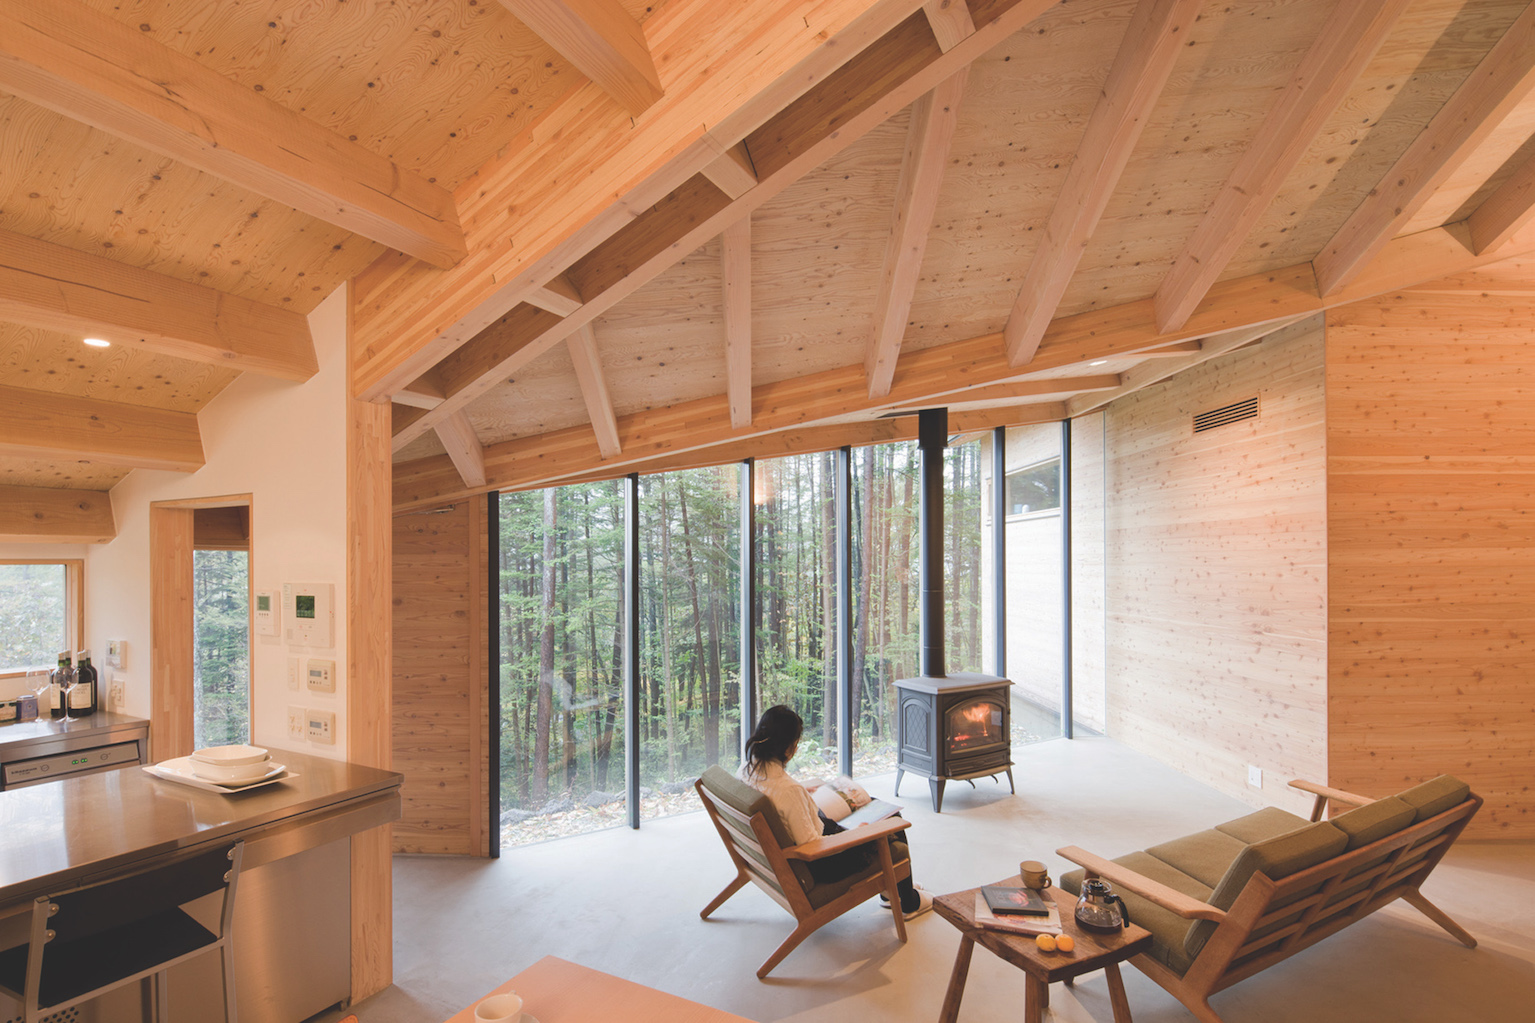 These Amazingly Creative Homes Show Japanese Design At Its Best